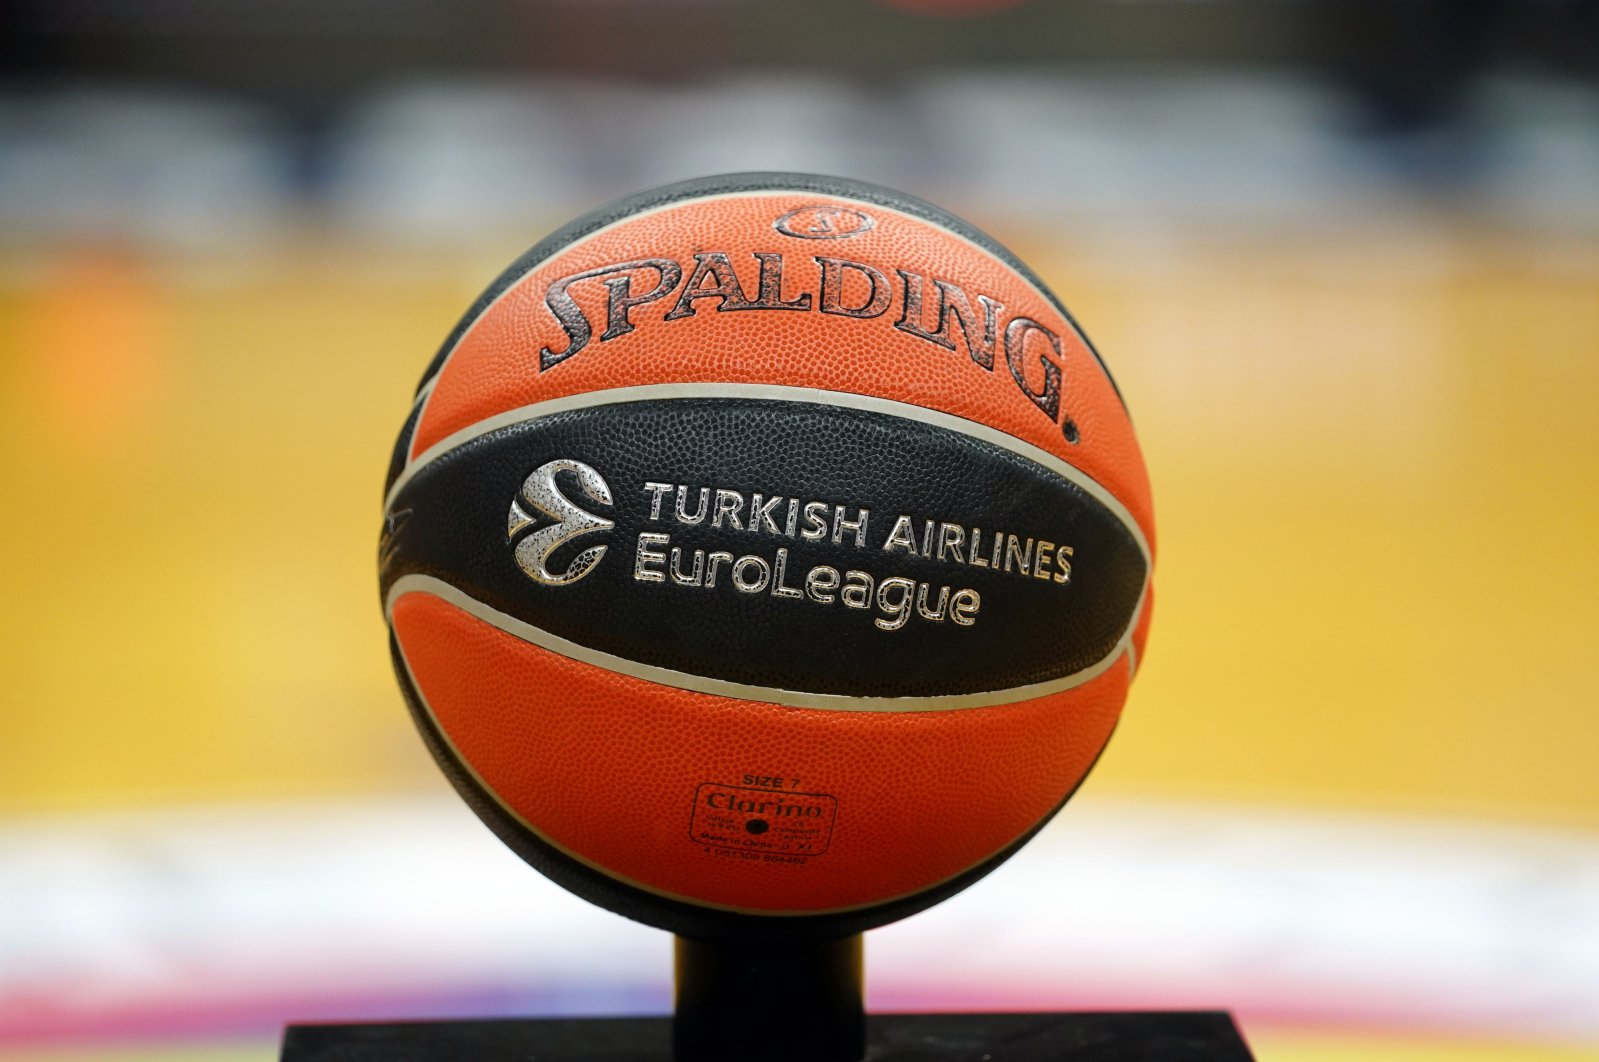 A THY EuroLeague official match ball is on display in Istanbul, Turkey, Sept. 29, 2021.